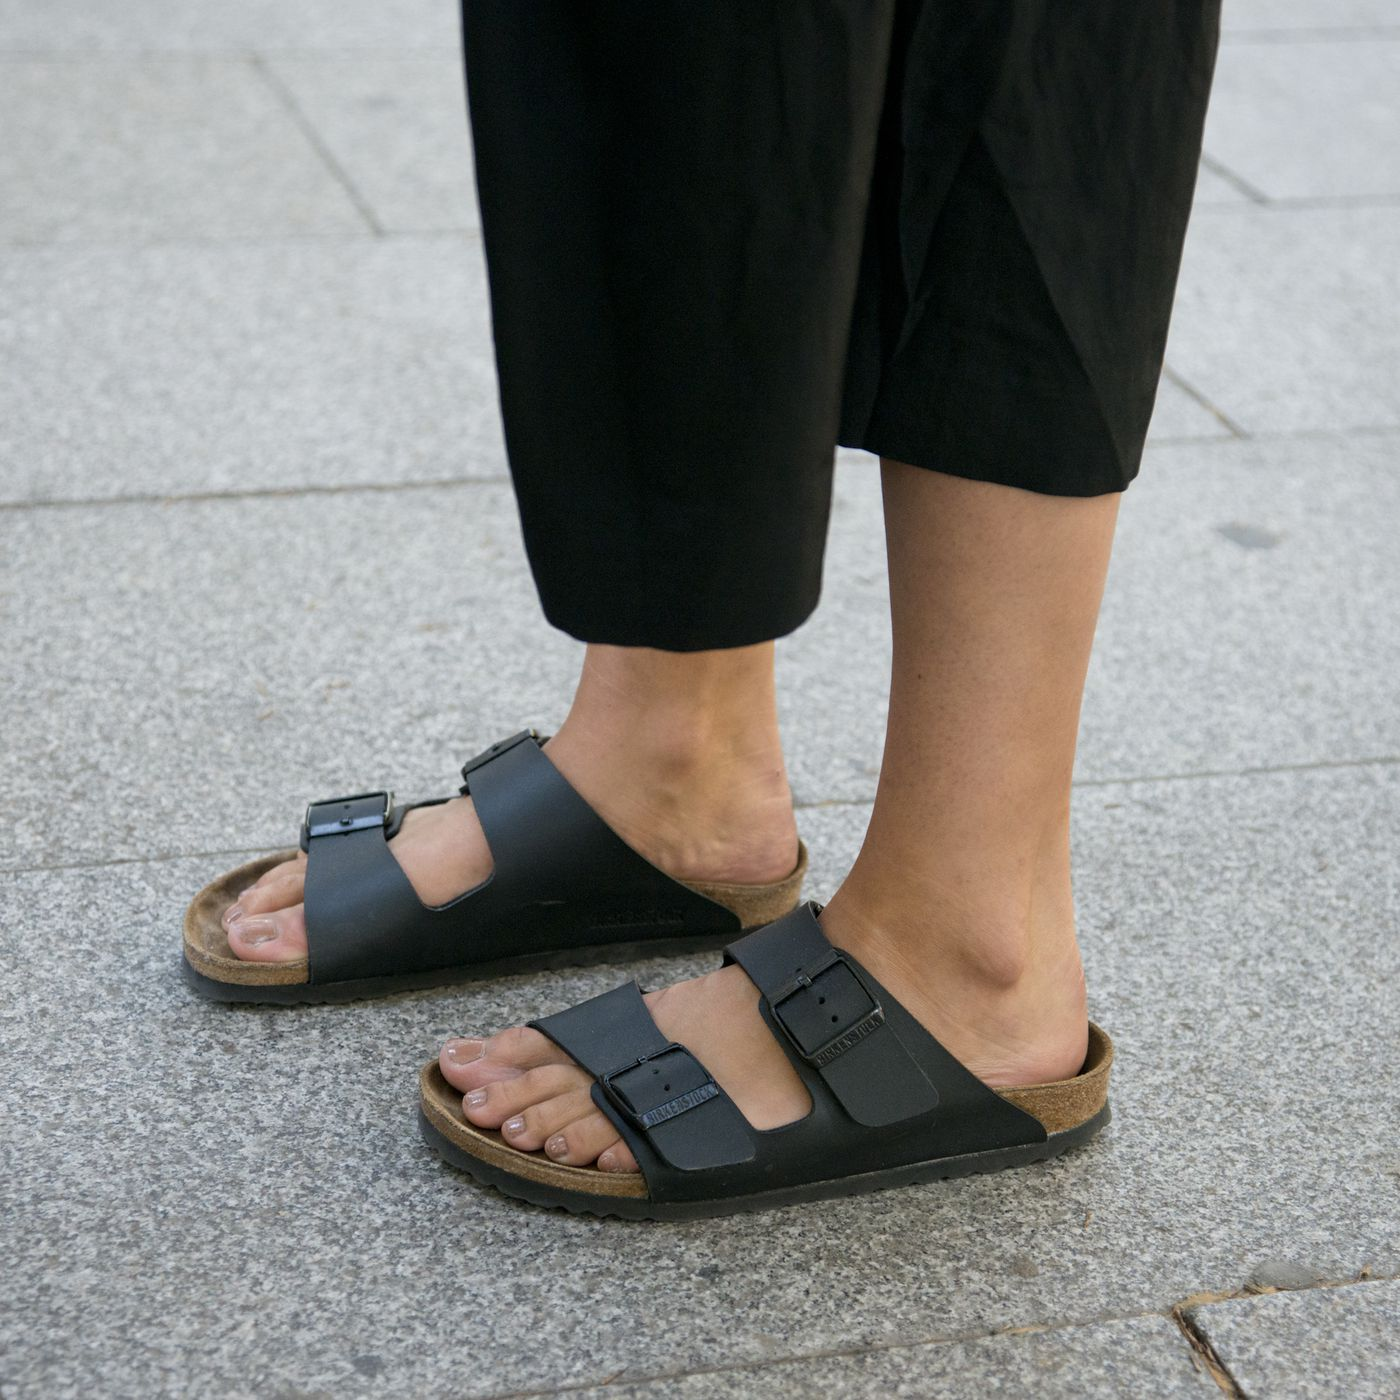 How Did Birkenstocks Convince Us the Pain of Breaking Them in Was Worth It?  - Vox